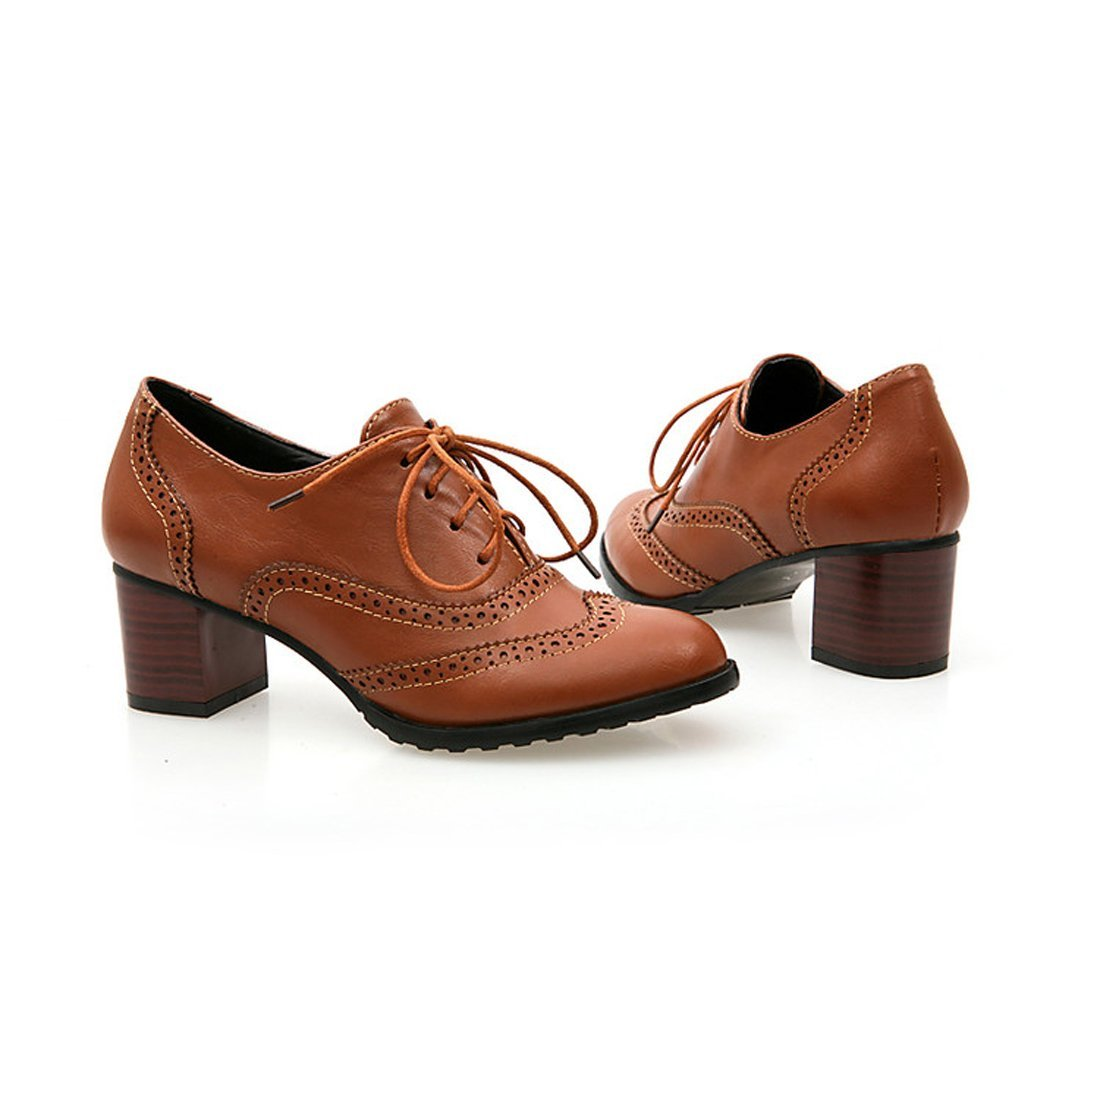 England Brogue Shoe Womens Lace-up Mid Heel Wingtip Oxfords Vintage PU Leather Shoes 1